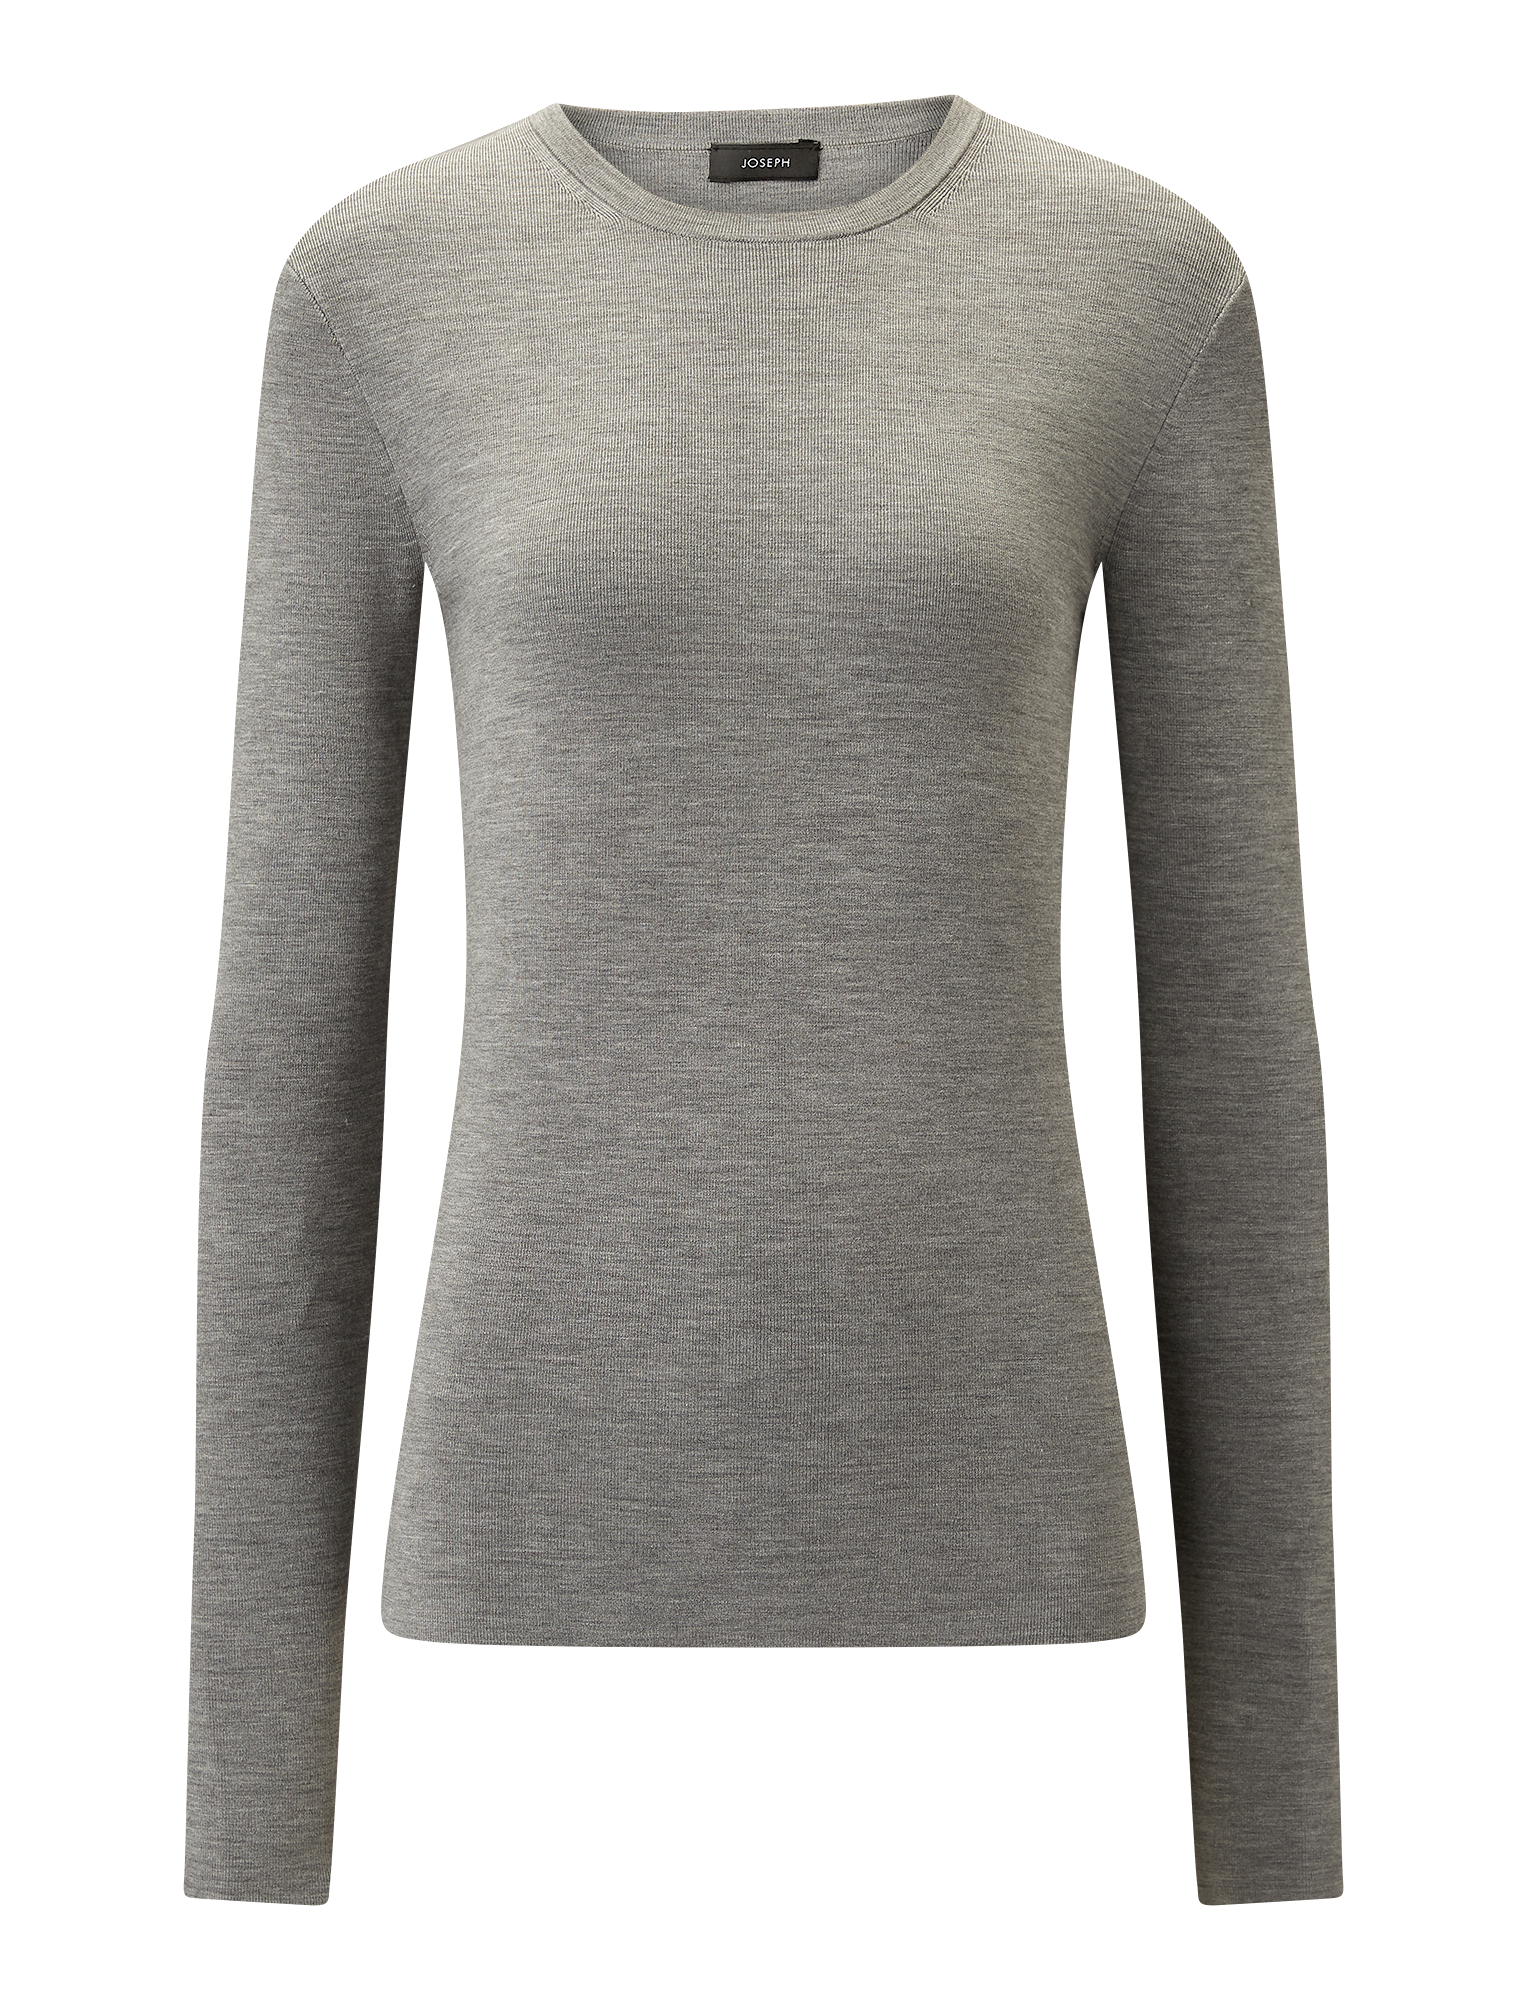 Joseph, Silk Stretch Knit, in GREY CHINE